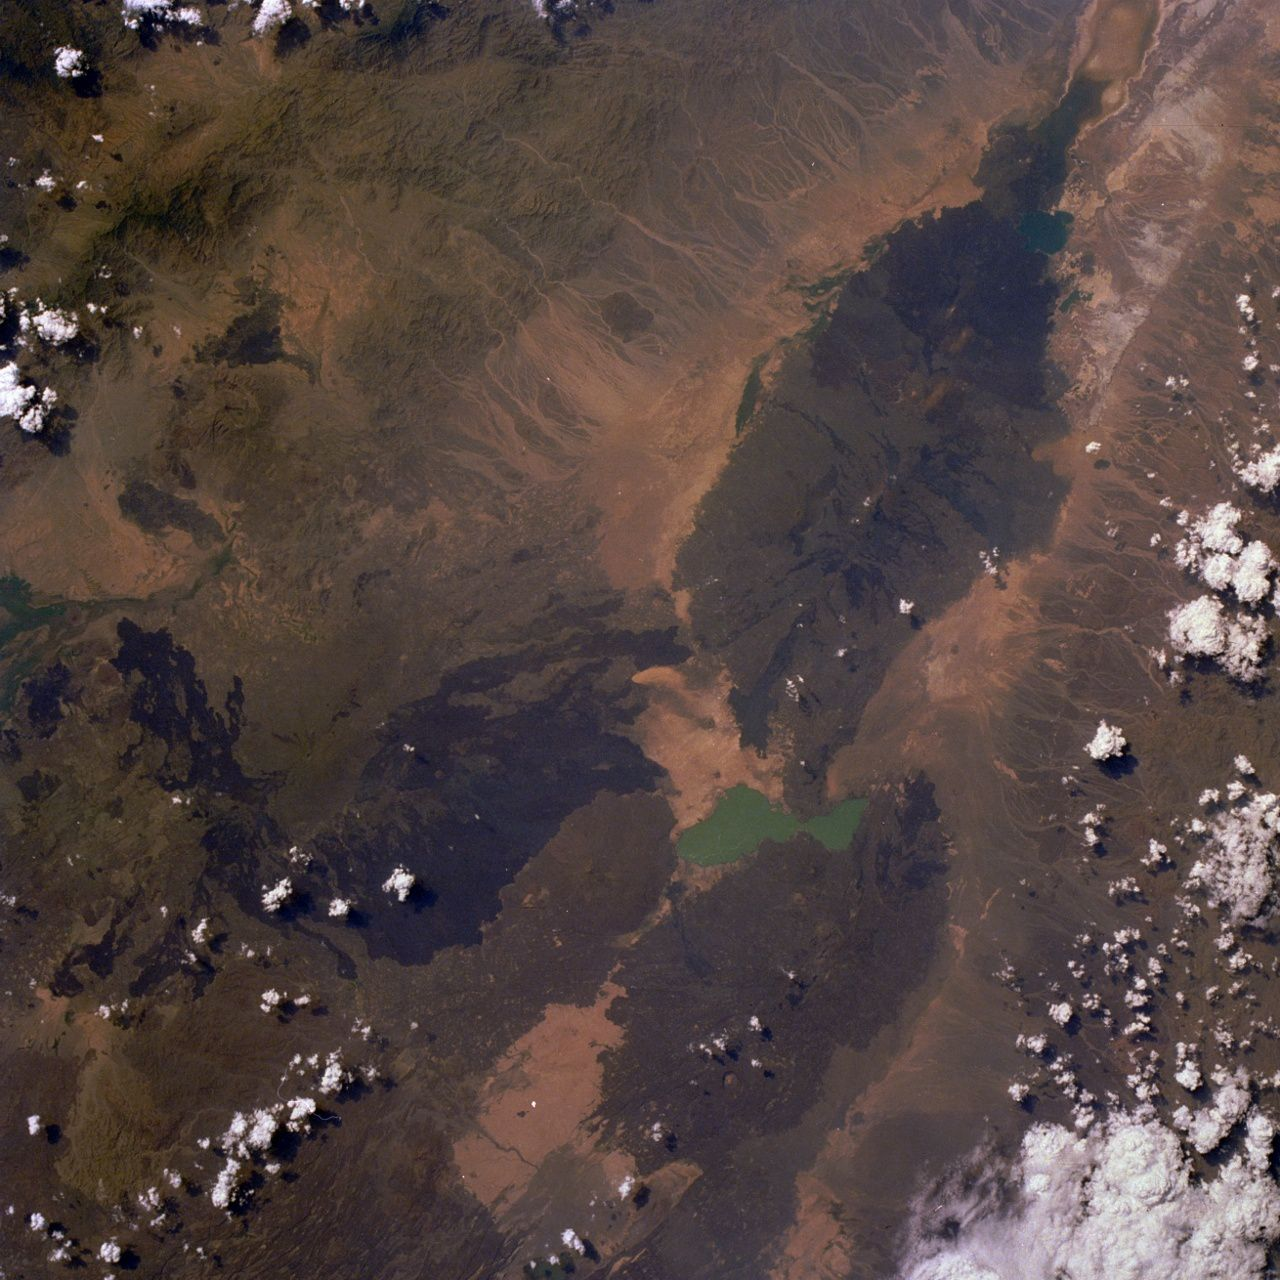 "Le massif de l'Erta Ale - photo NASA  STS026-033-080 / 30.09.1988 - 11h35 GMT (Erta Alle, a shield volcano located within the Rift Valley of northern Ethiopia, is visible in this near-vertical photograph taken north of turquoise Afrera Ye Ch'ew Lake. The volcano, called ""the smoking mountain"" by the local tribesmen, has an active lava lake (barely discernible in the photograph) approximately 150 feet (46 meters) wide, which has been in a constant state of eruption since the late 1960s.)"